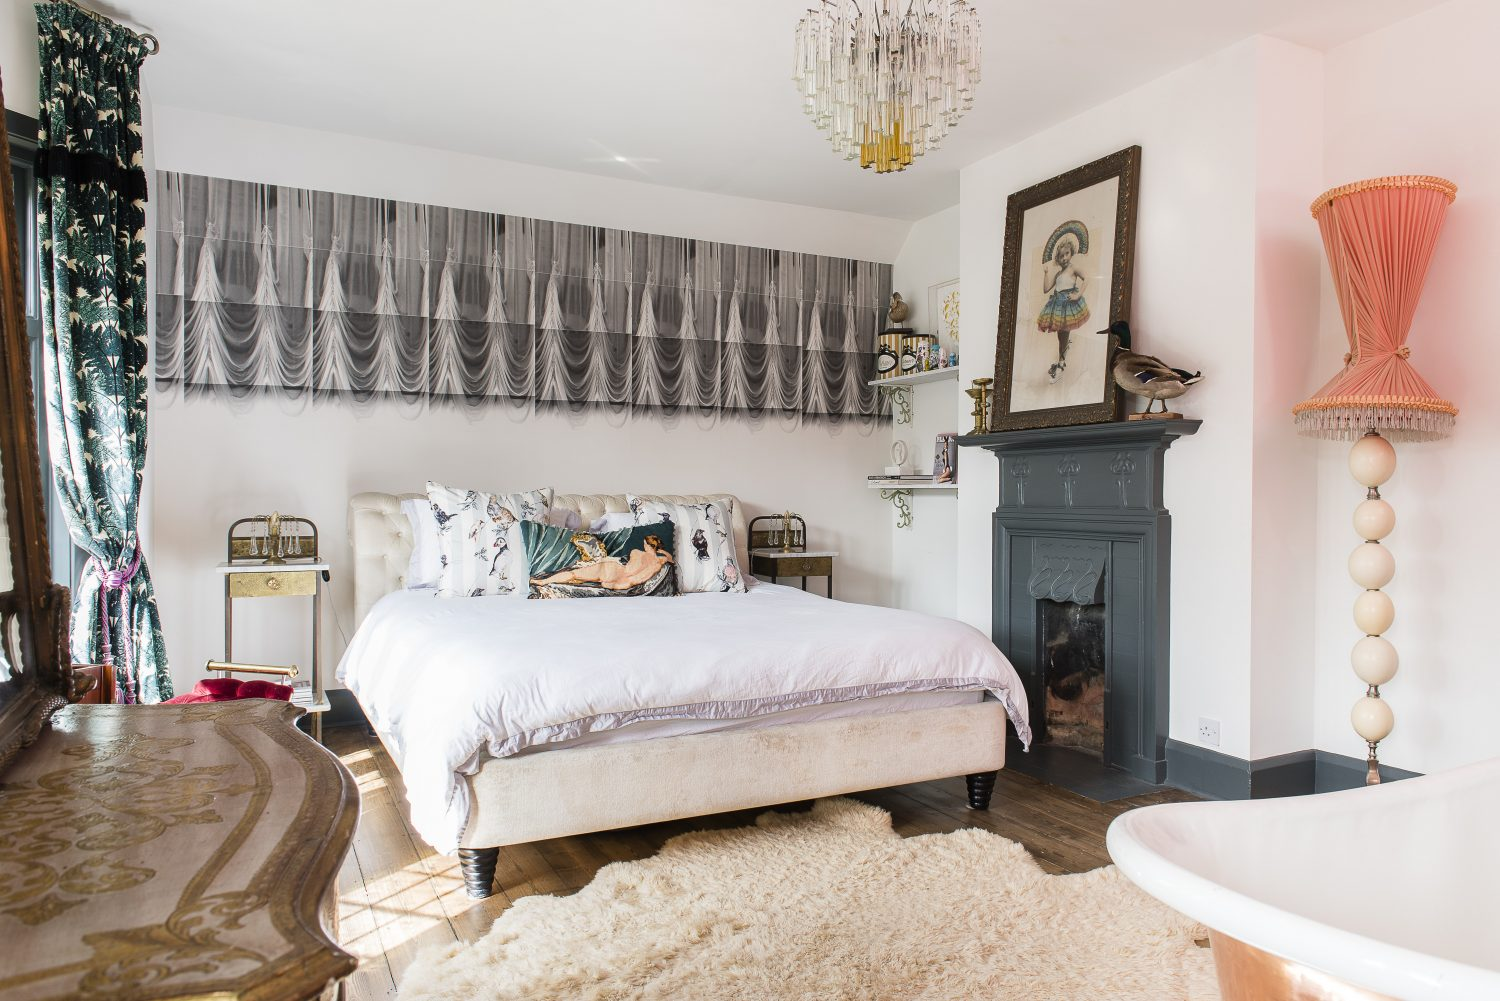 Above: The master suite. The bed is from Selfridges. A corset-shaped lightshade by Sera of London sits atop a 70s base made with real ostrich eggs Below left: Saucy touches include a framed copy of Playboy with Kate Moss on the cover